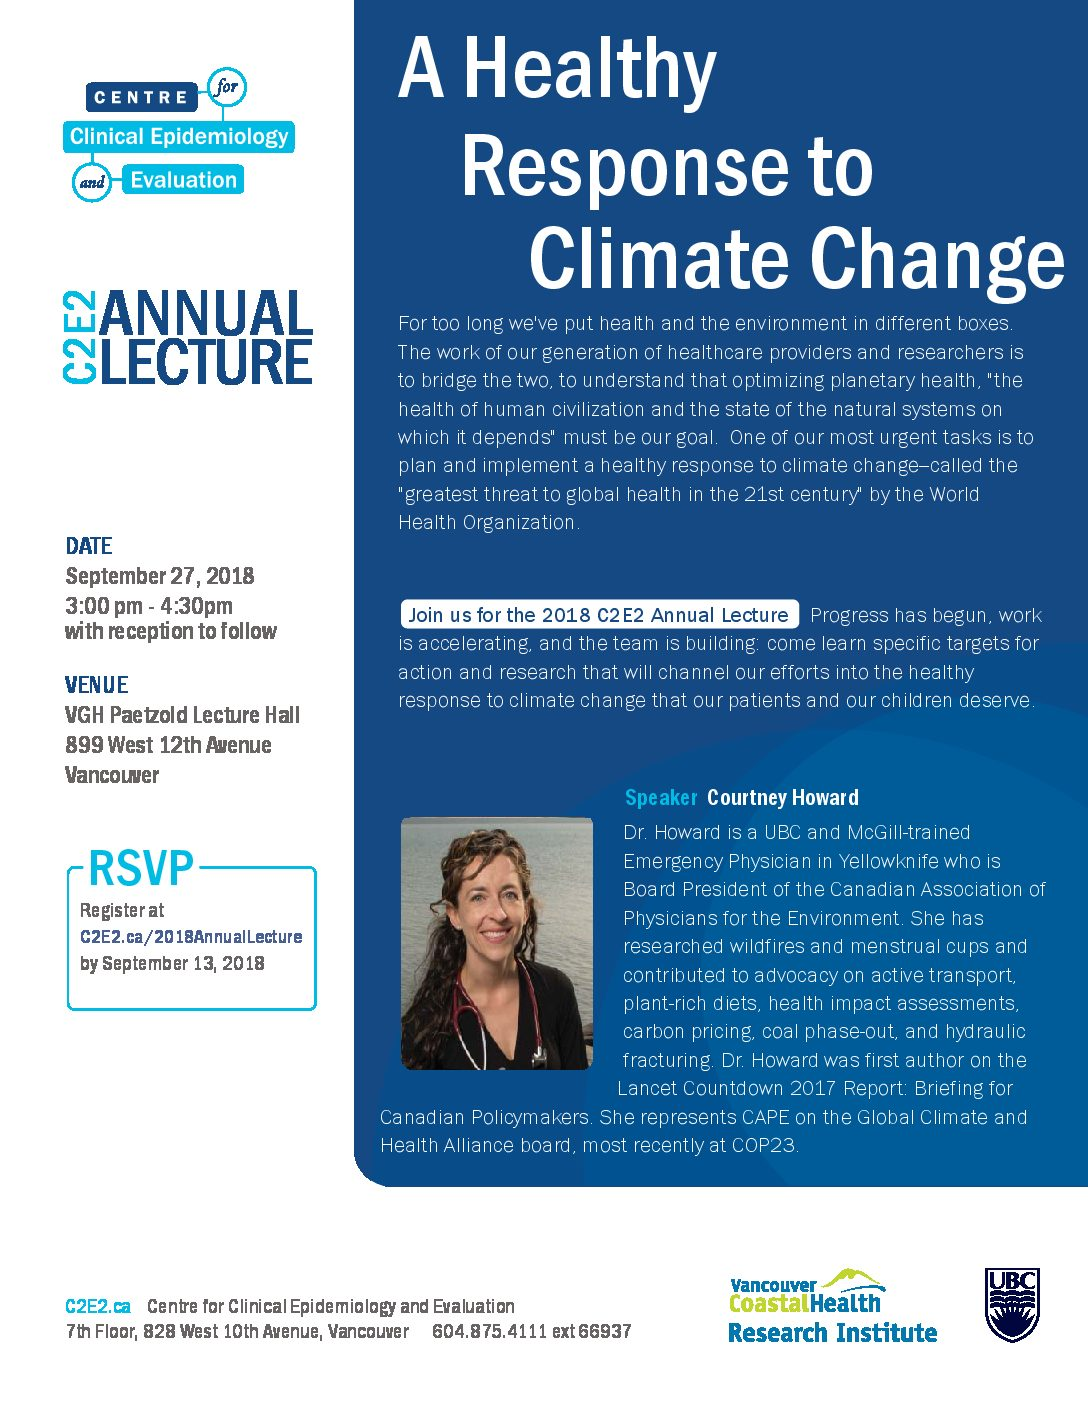 C2E2 2018 ANNUAL LECTURE – A HEALTHY RESPONSE TO CLIMATE CHANGE